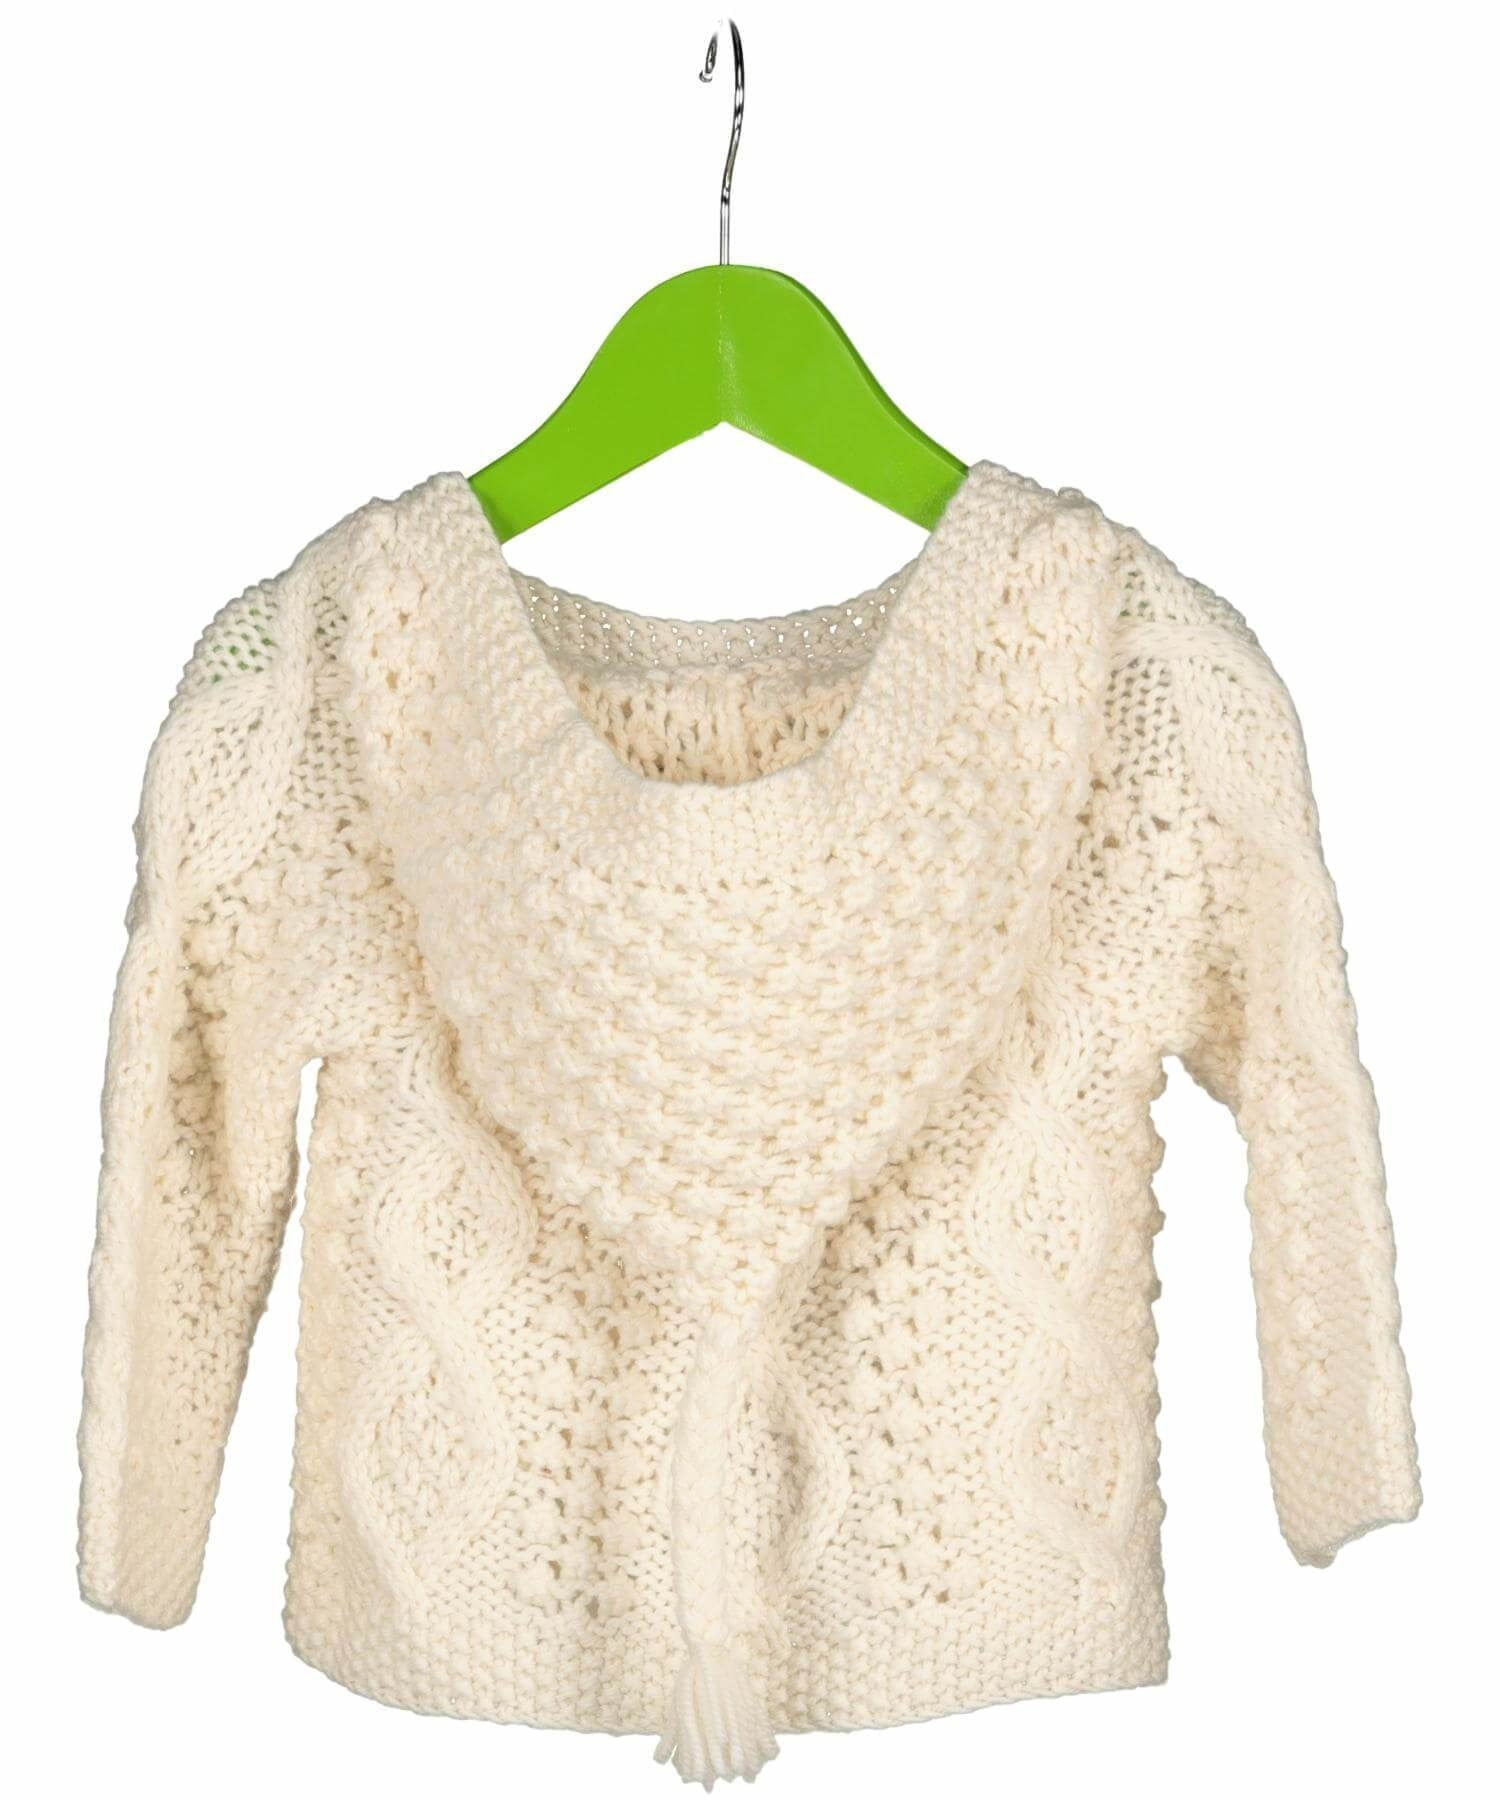 Baby Hoodie - Winter White - [Aran Woollen Mills] - Childrens Sweaters & Cardigans - Irish Gifts